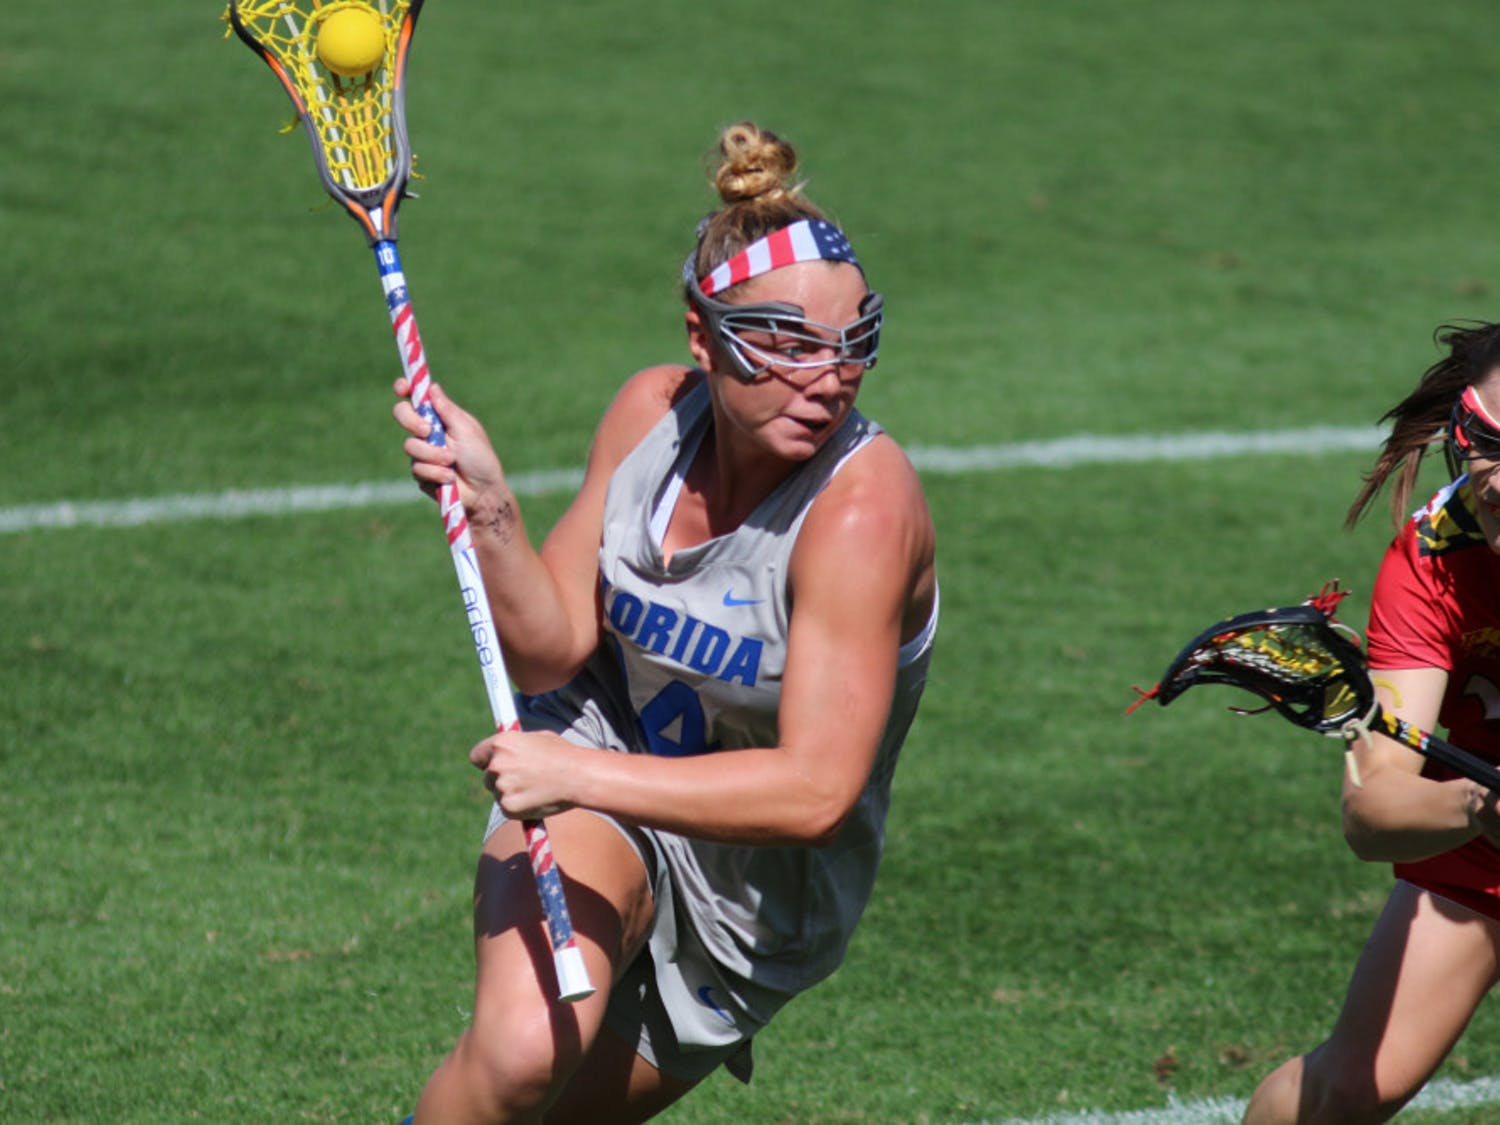 Attacker Lindsey Ronbeck missed the second half of the game against Navy with an apparent knee injury.